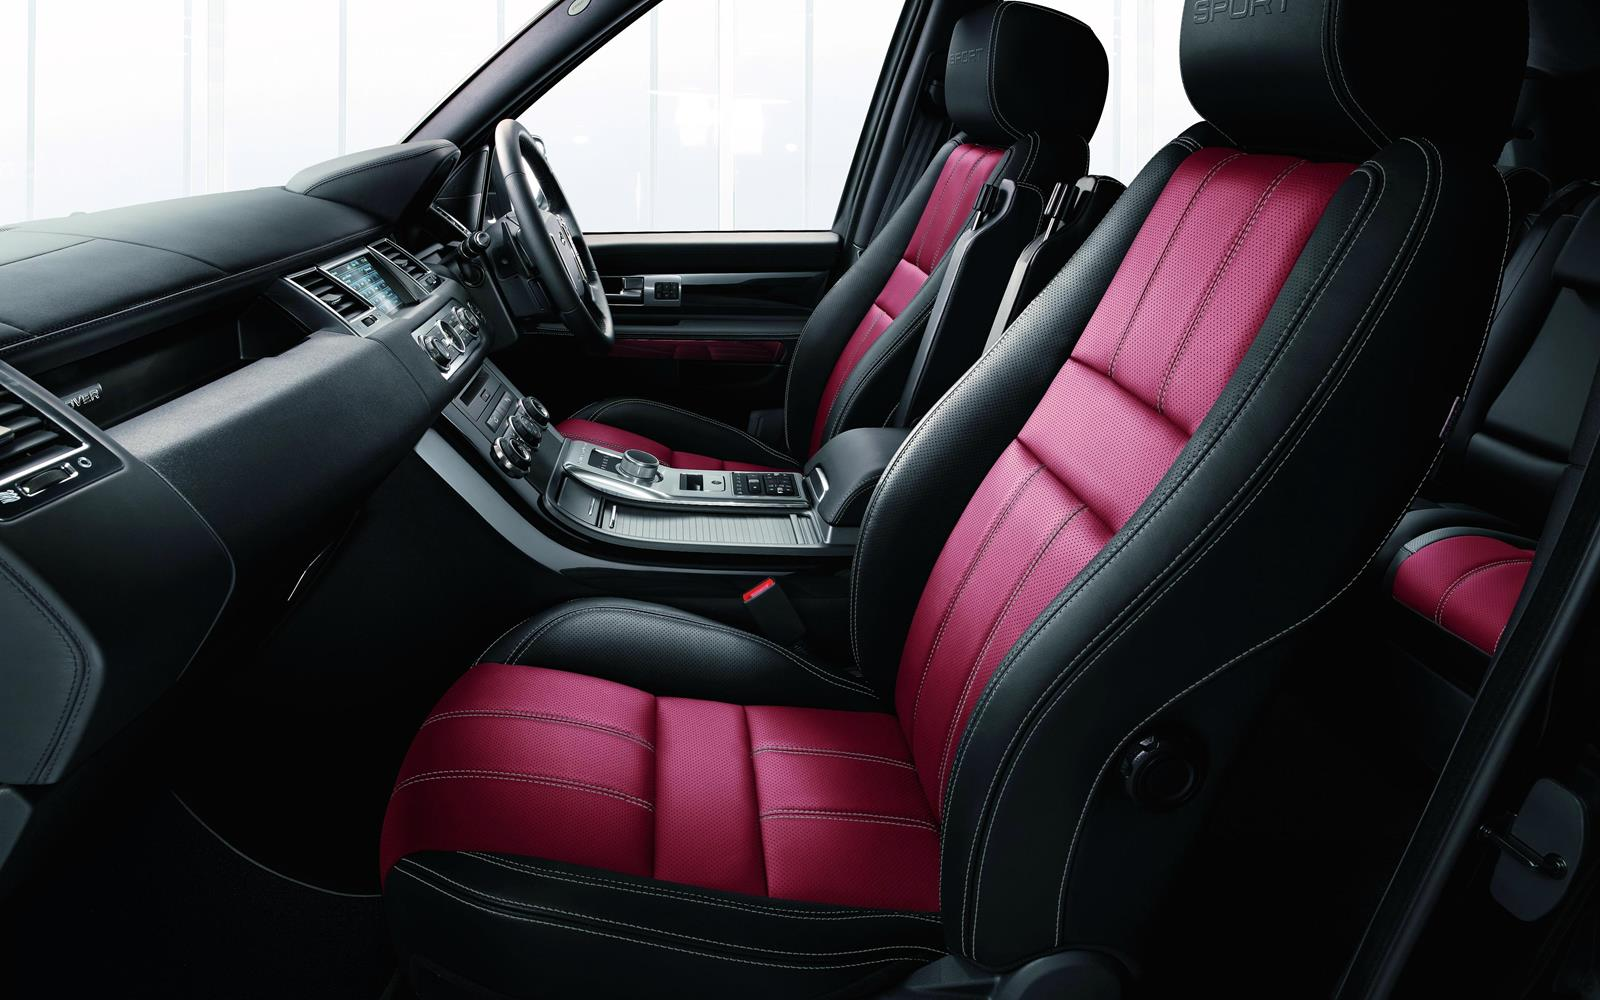 range rover sport 2013 interior phil huff frontseatdriver. Black Bedroom Furniture Sets. Home Design Ideas